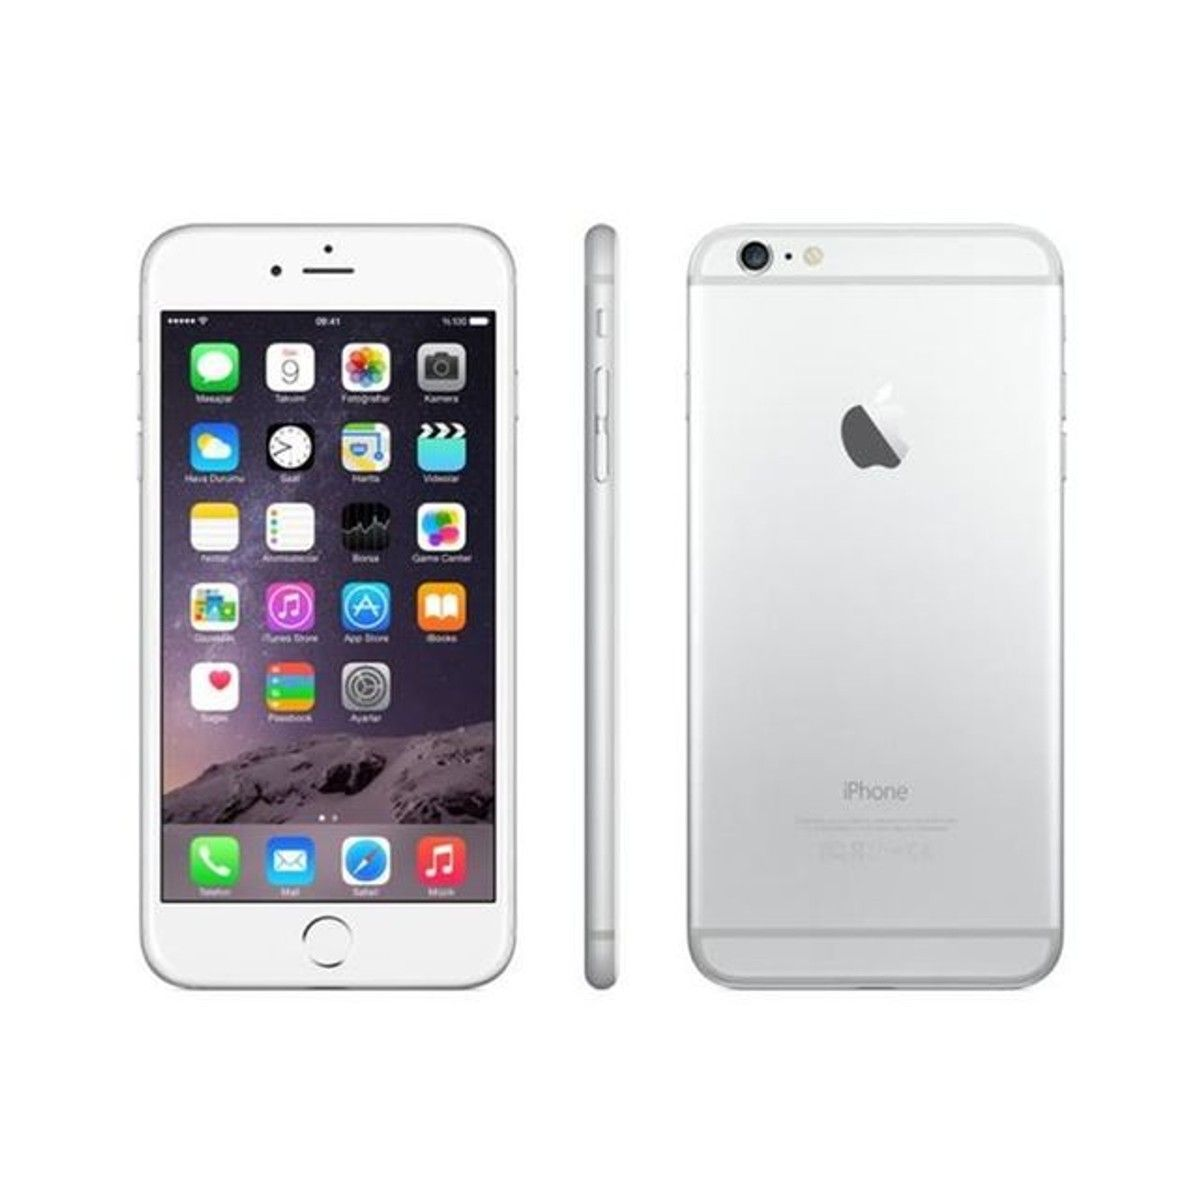 Telephone Apple Iphone 6s Plus 16 Go Argent Reconditionne A Neuf Taille Taille Unique Apple Iphone 6 Telephone Apple Iphone 6